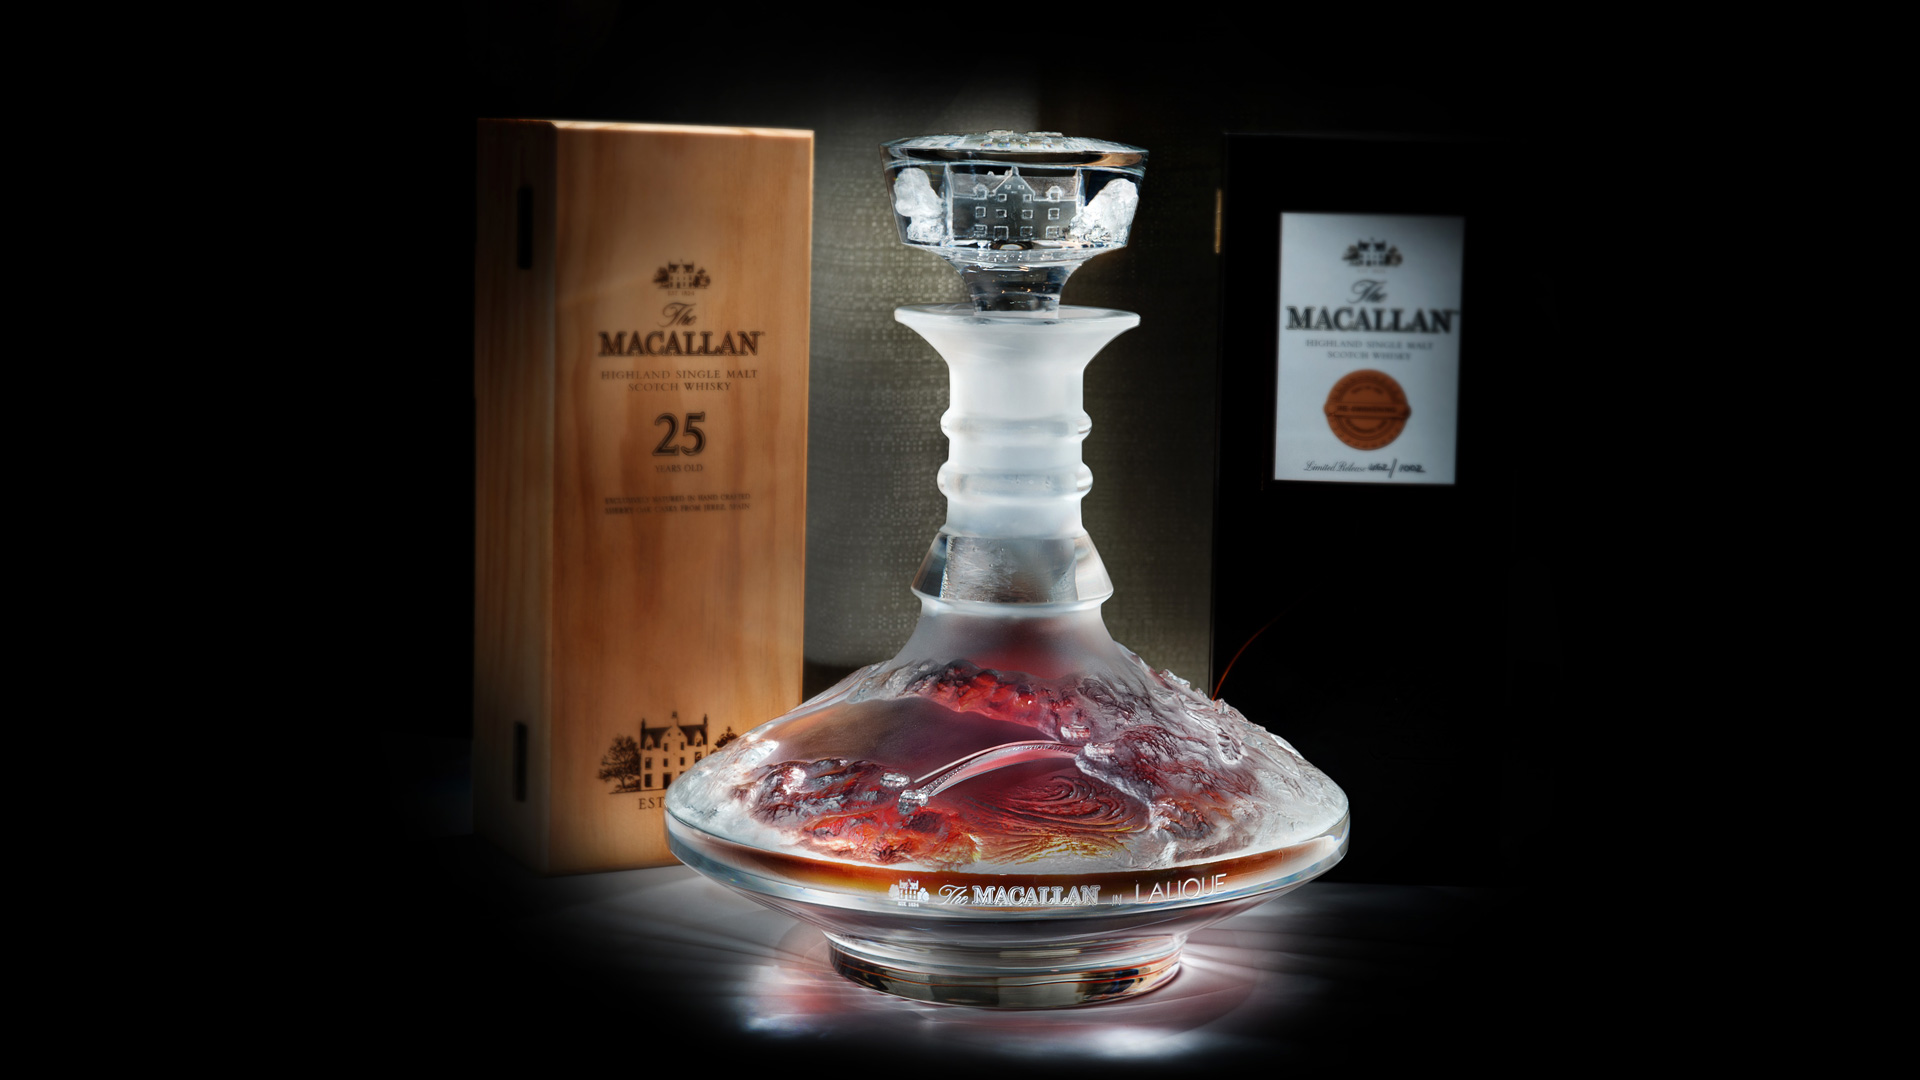 The Macallan Whiskey Lalique